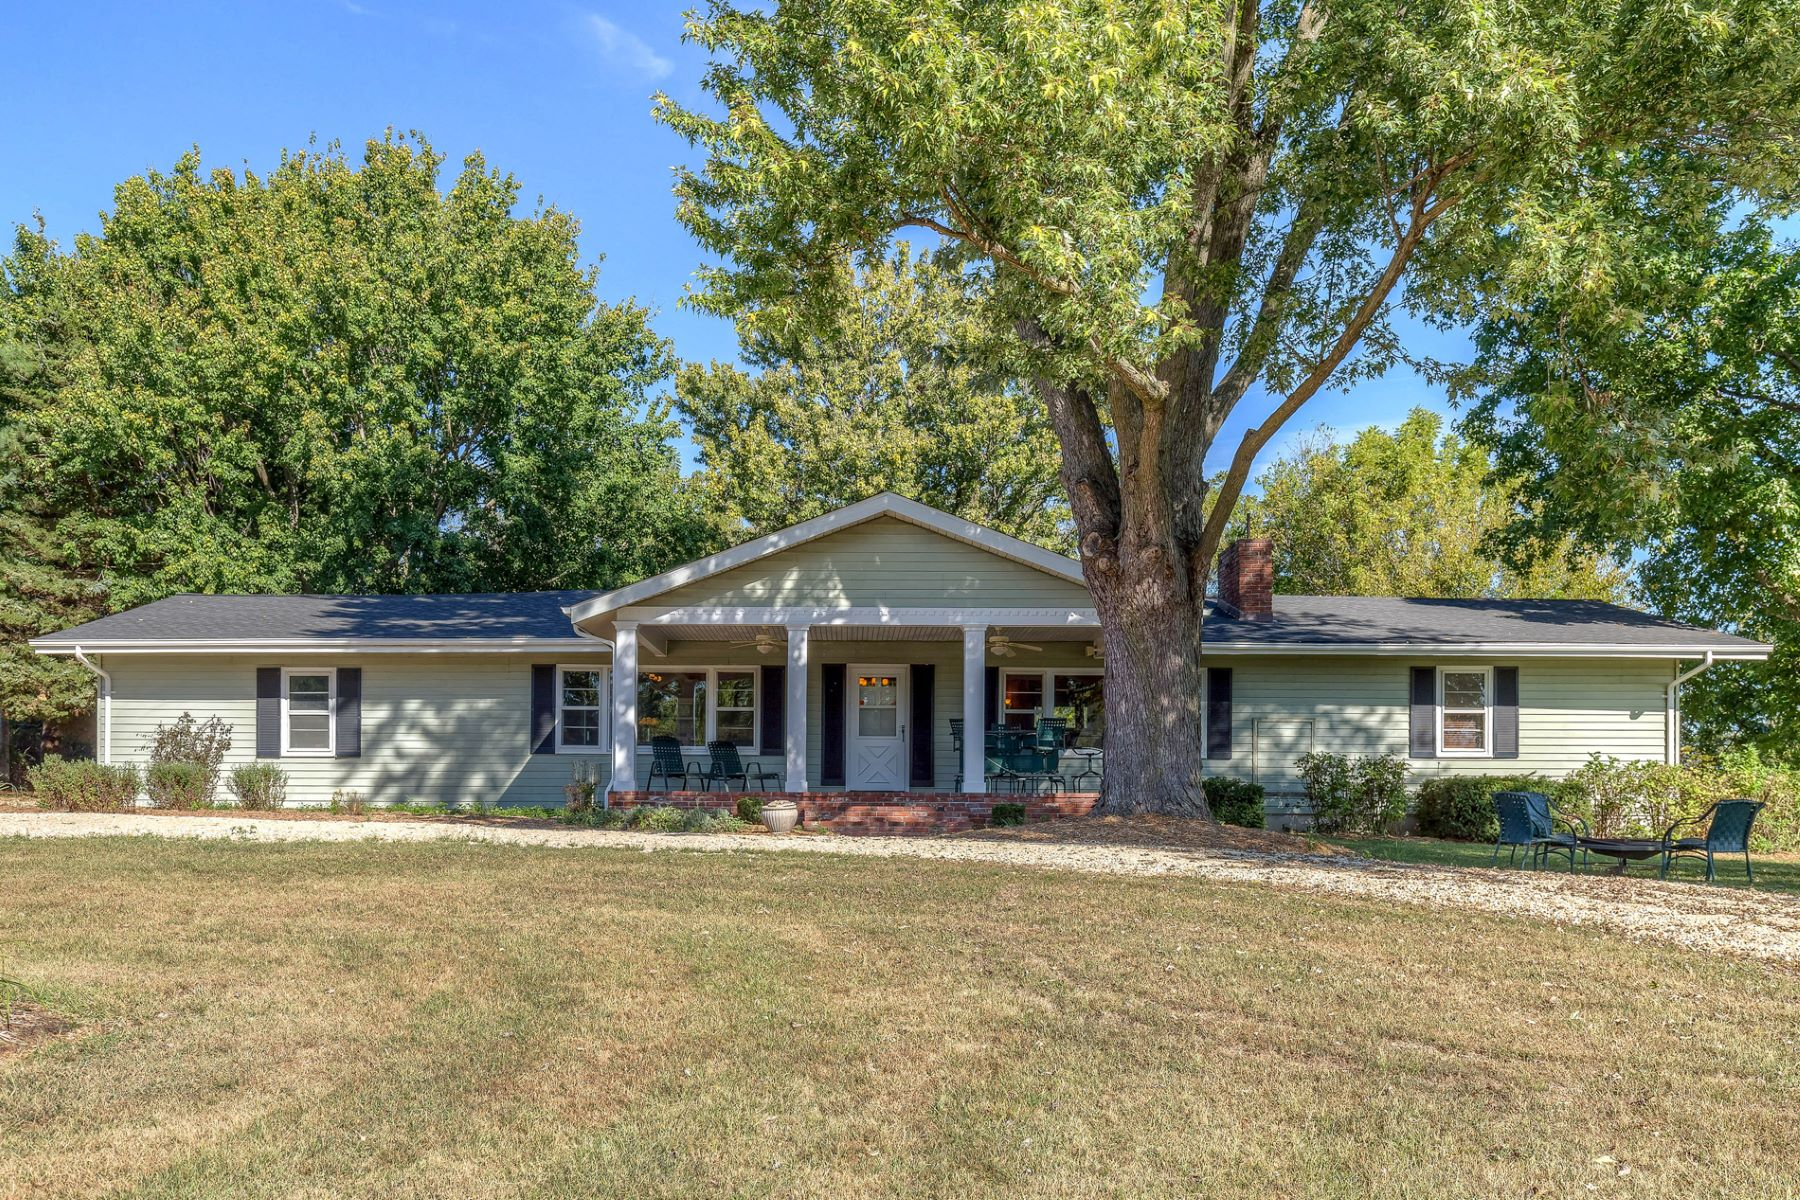 Single Family Home for Sale at Highway 79 17426 Highway 79 Clarksville, Missouri 63336 United States